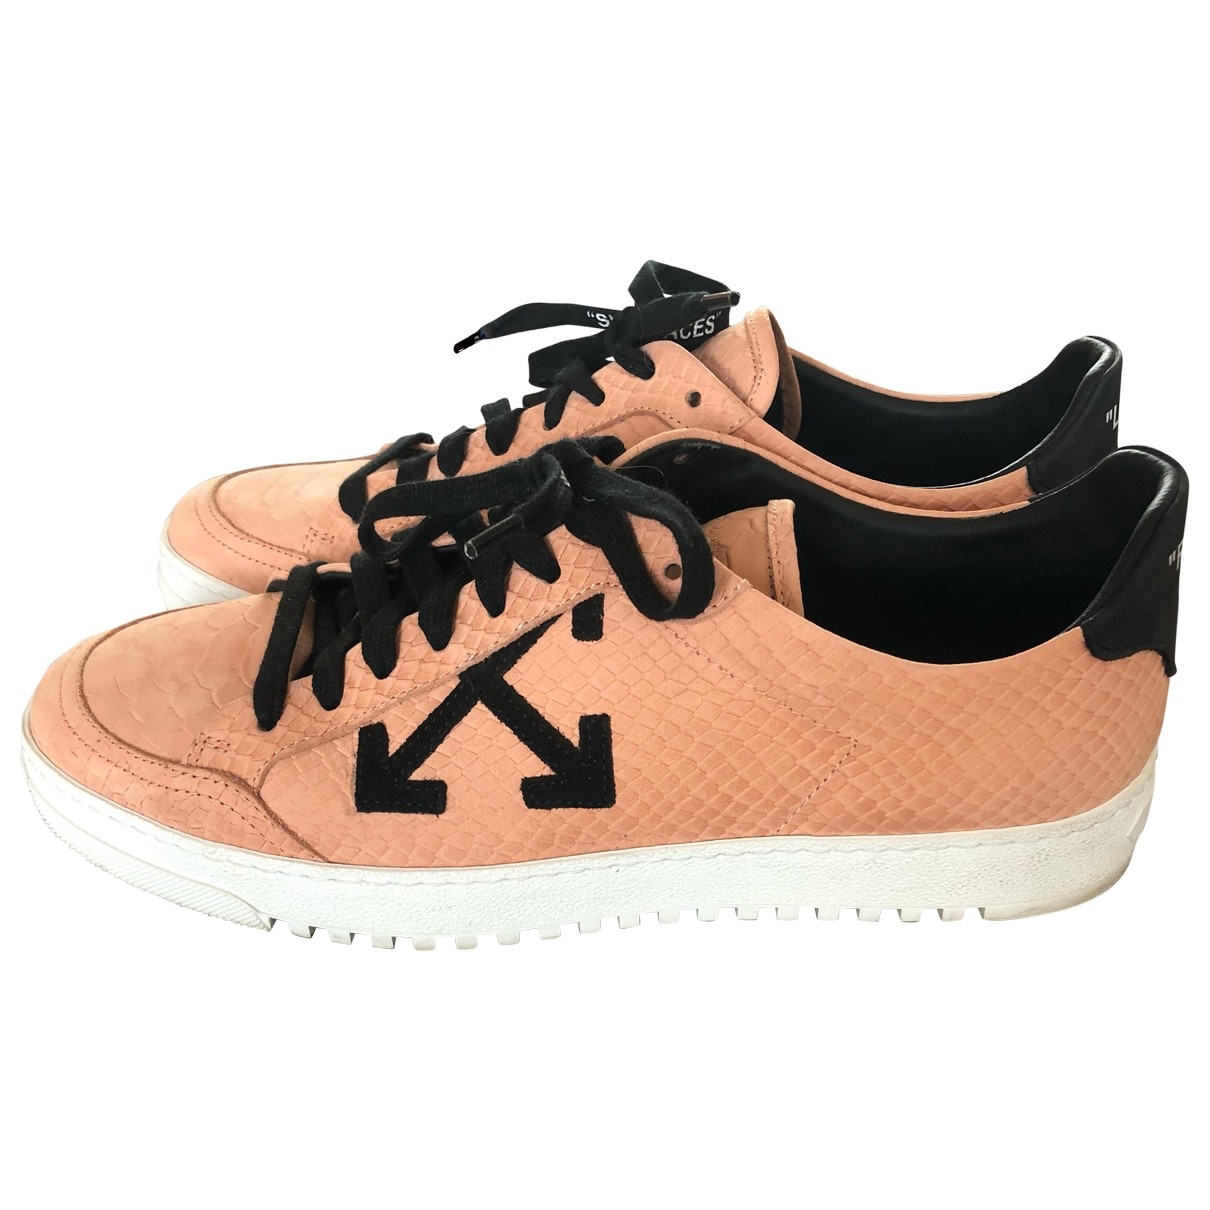 Off-white - Baskets Low 2.0 pour femme en cuir - rose